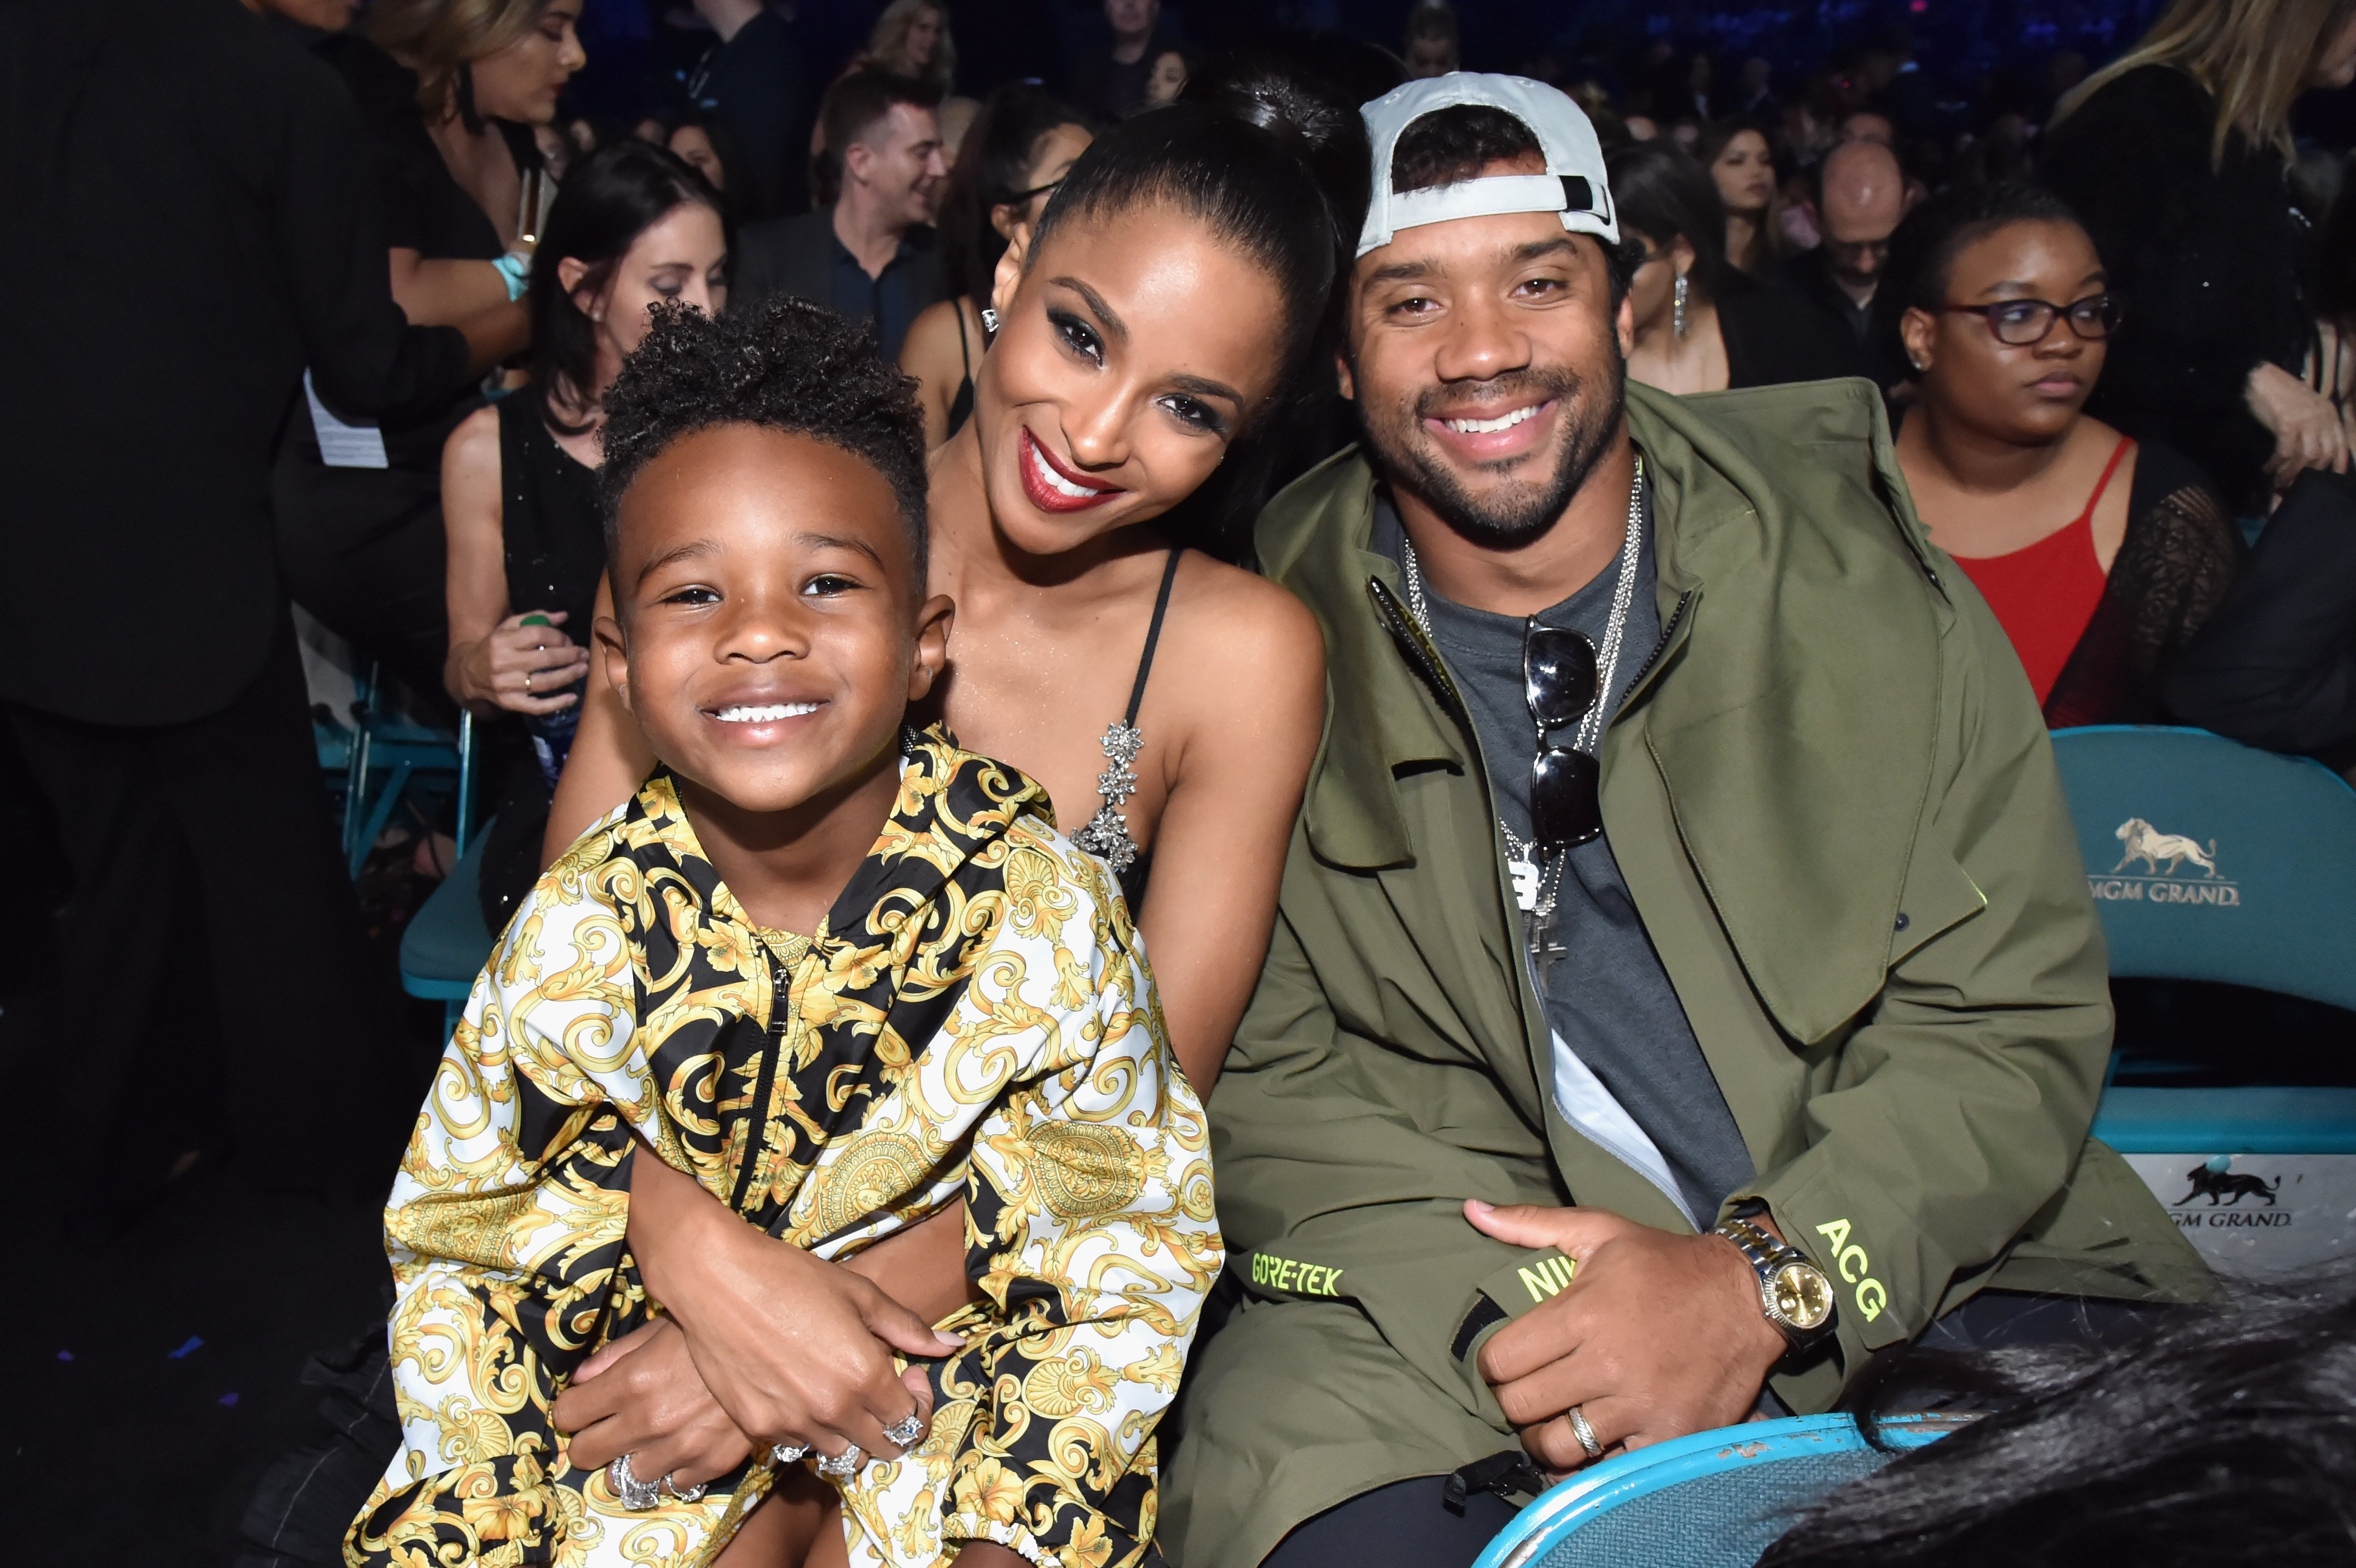 Future Zahir Wilburn, Ciara, and Russell Wilson pictured at the 2019 Billboard Music Awards in Las Vegas, Nevada on May 1, 2019. | Photo: Getty Images